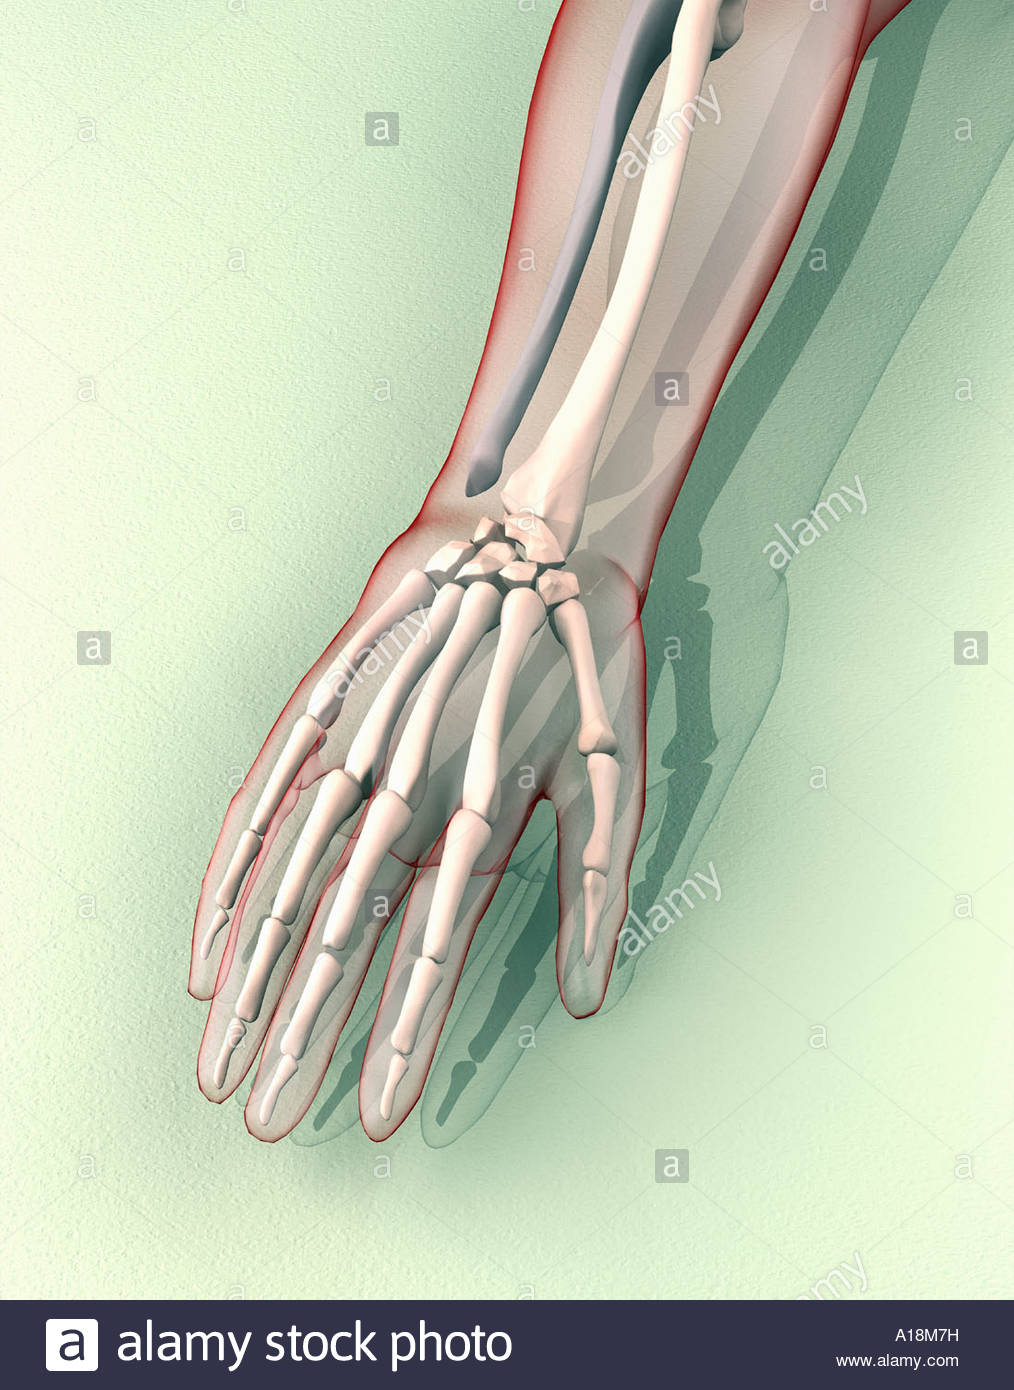 Human Arm With Semi Transparent Form Showing Skeletal Structure